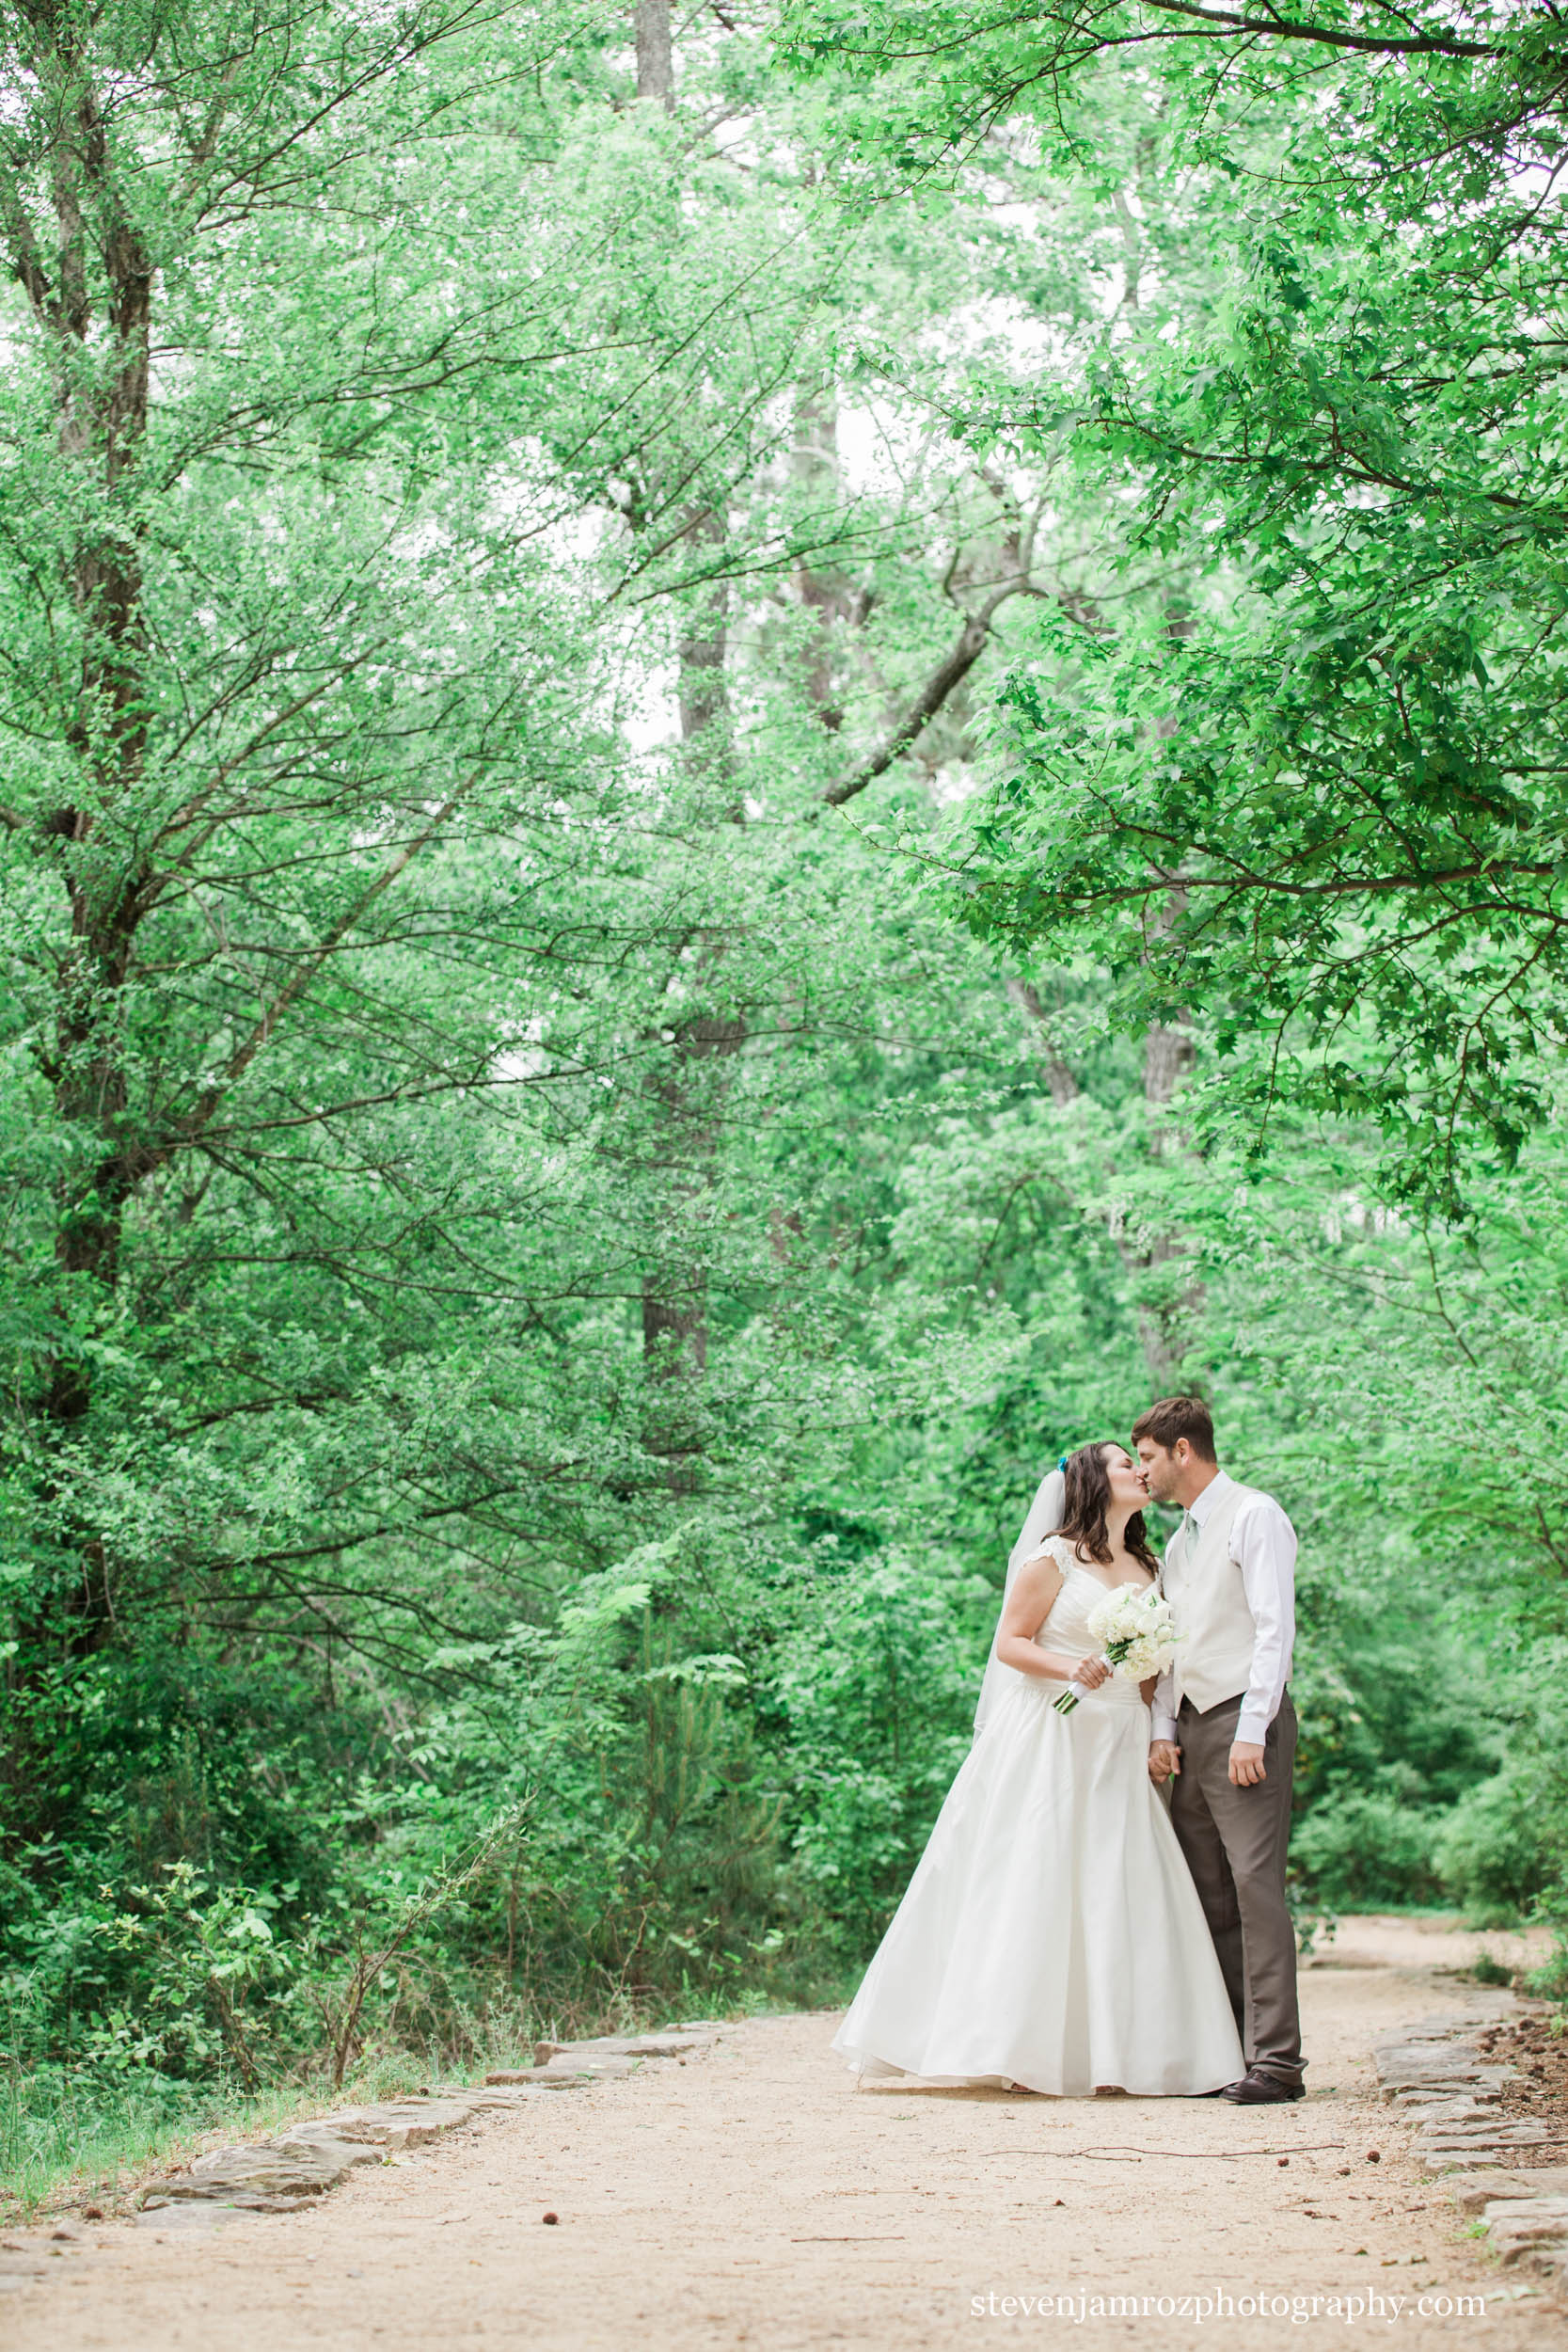 yates-mill-raleigh-wedding-steven-jamroz-photography-0603.jpg